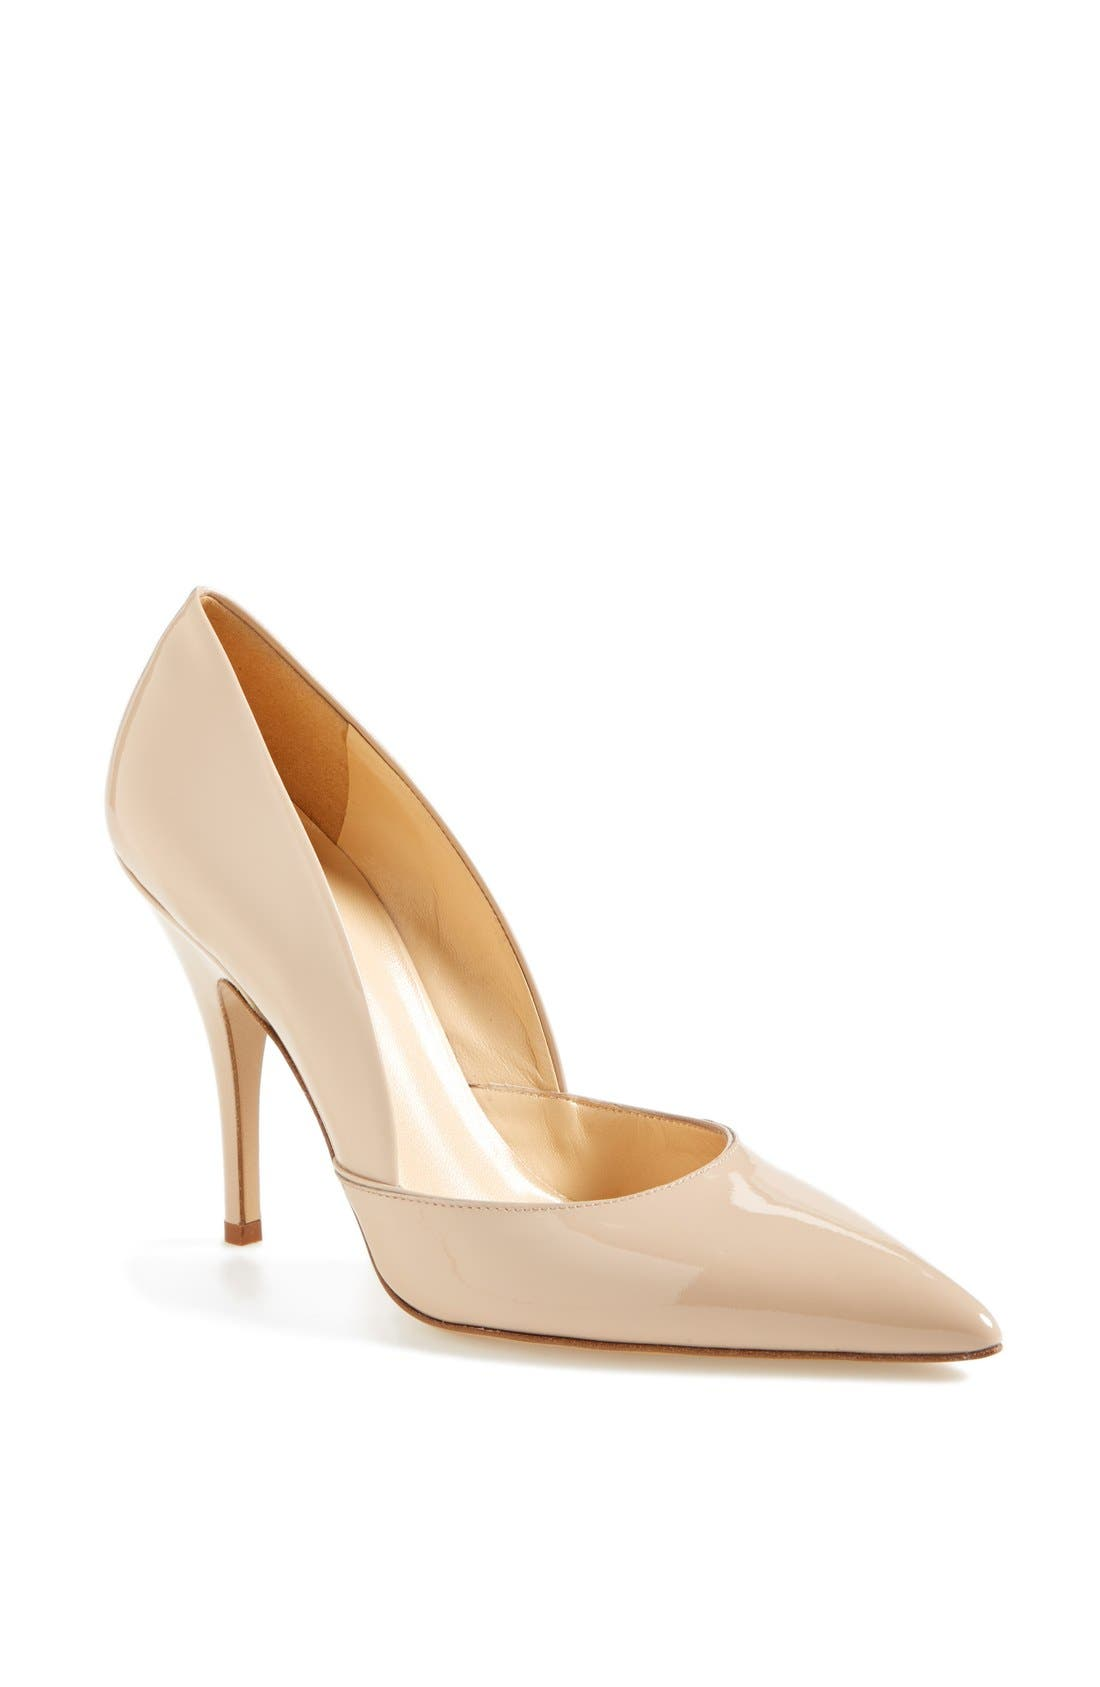 Main Image - kate spade new york 'lottie' pump (Women)